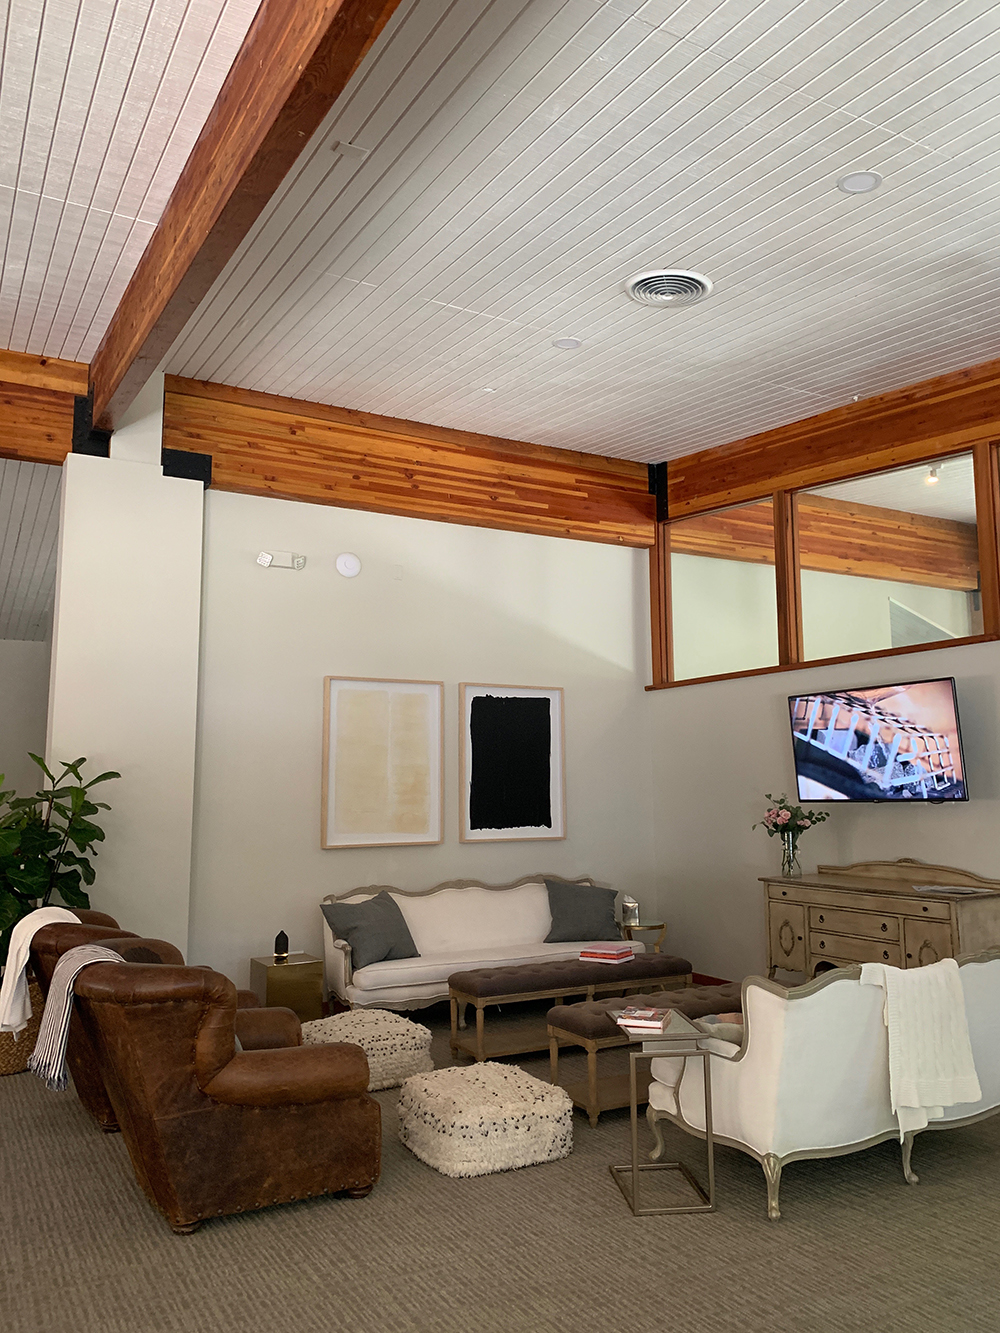 One of the sitting areas in the lounge.